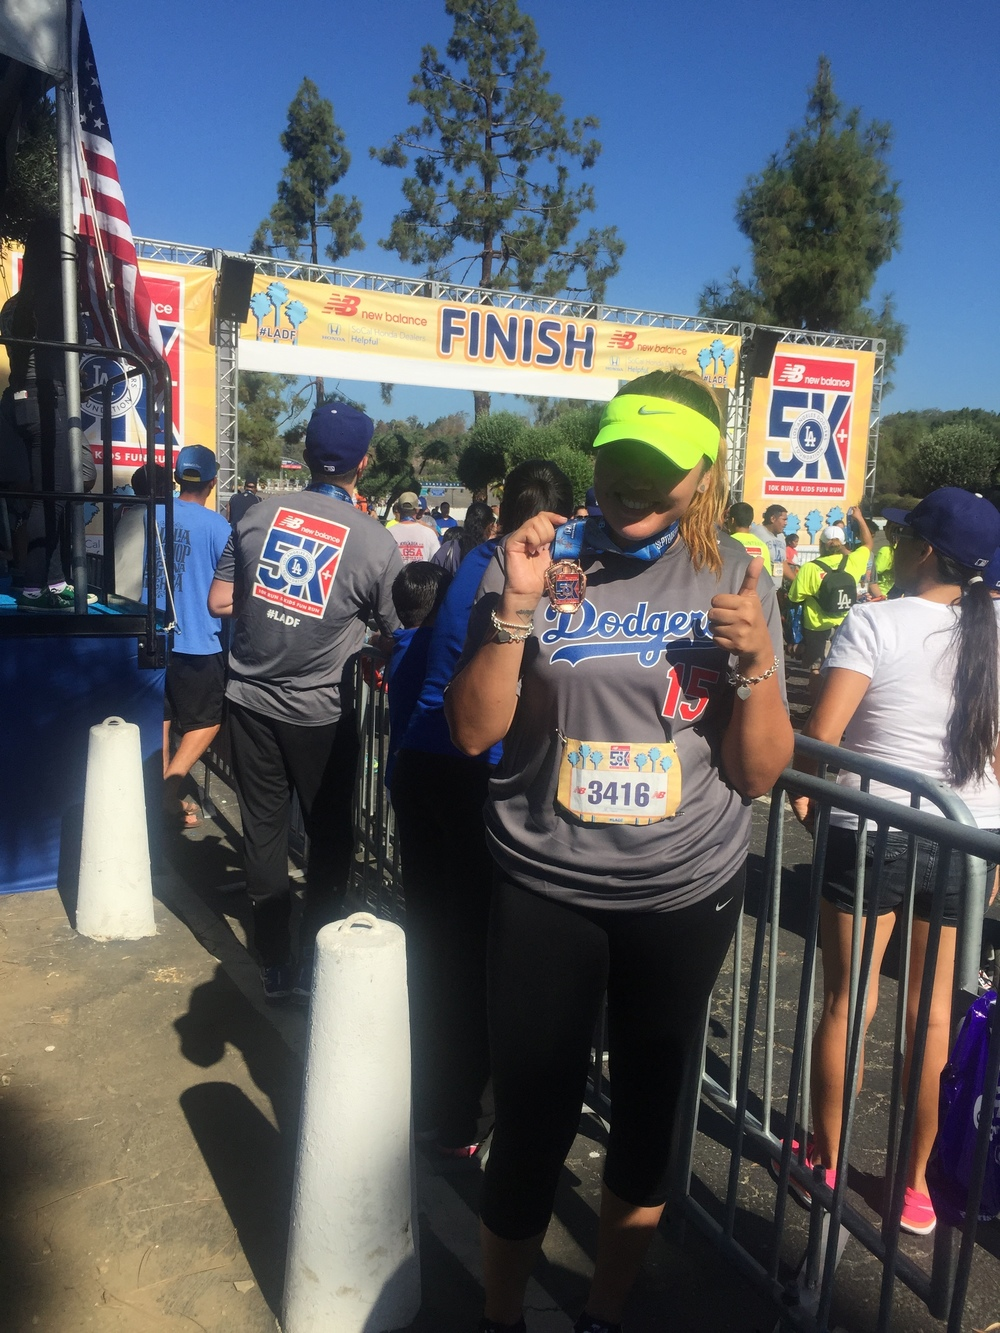 September 13, 2015 - My very first race, LA Dodgers Foundation 5K